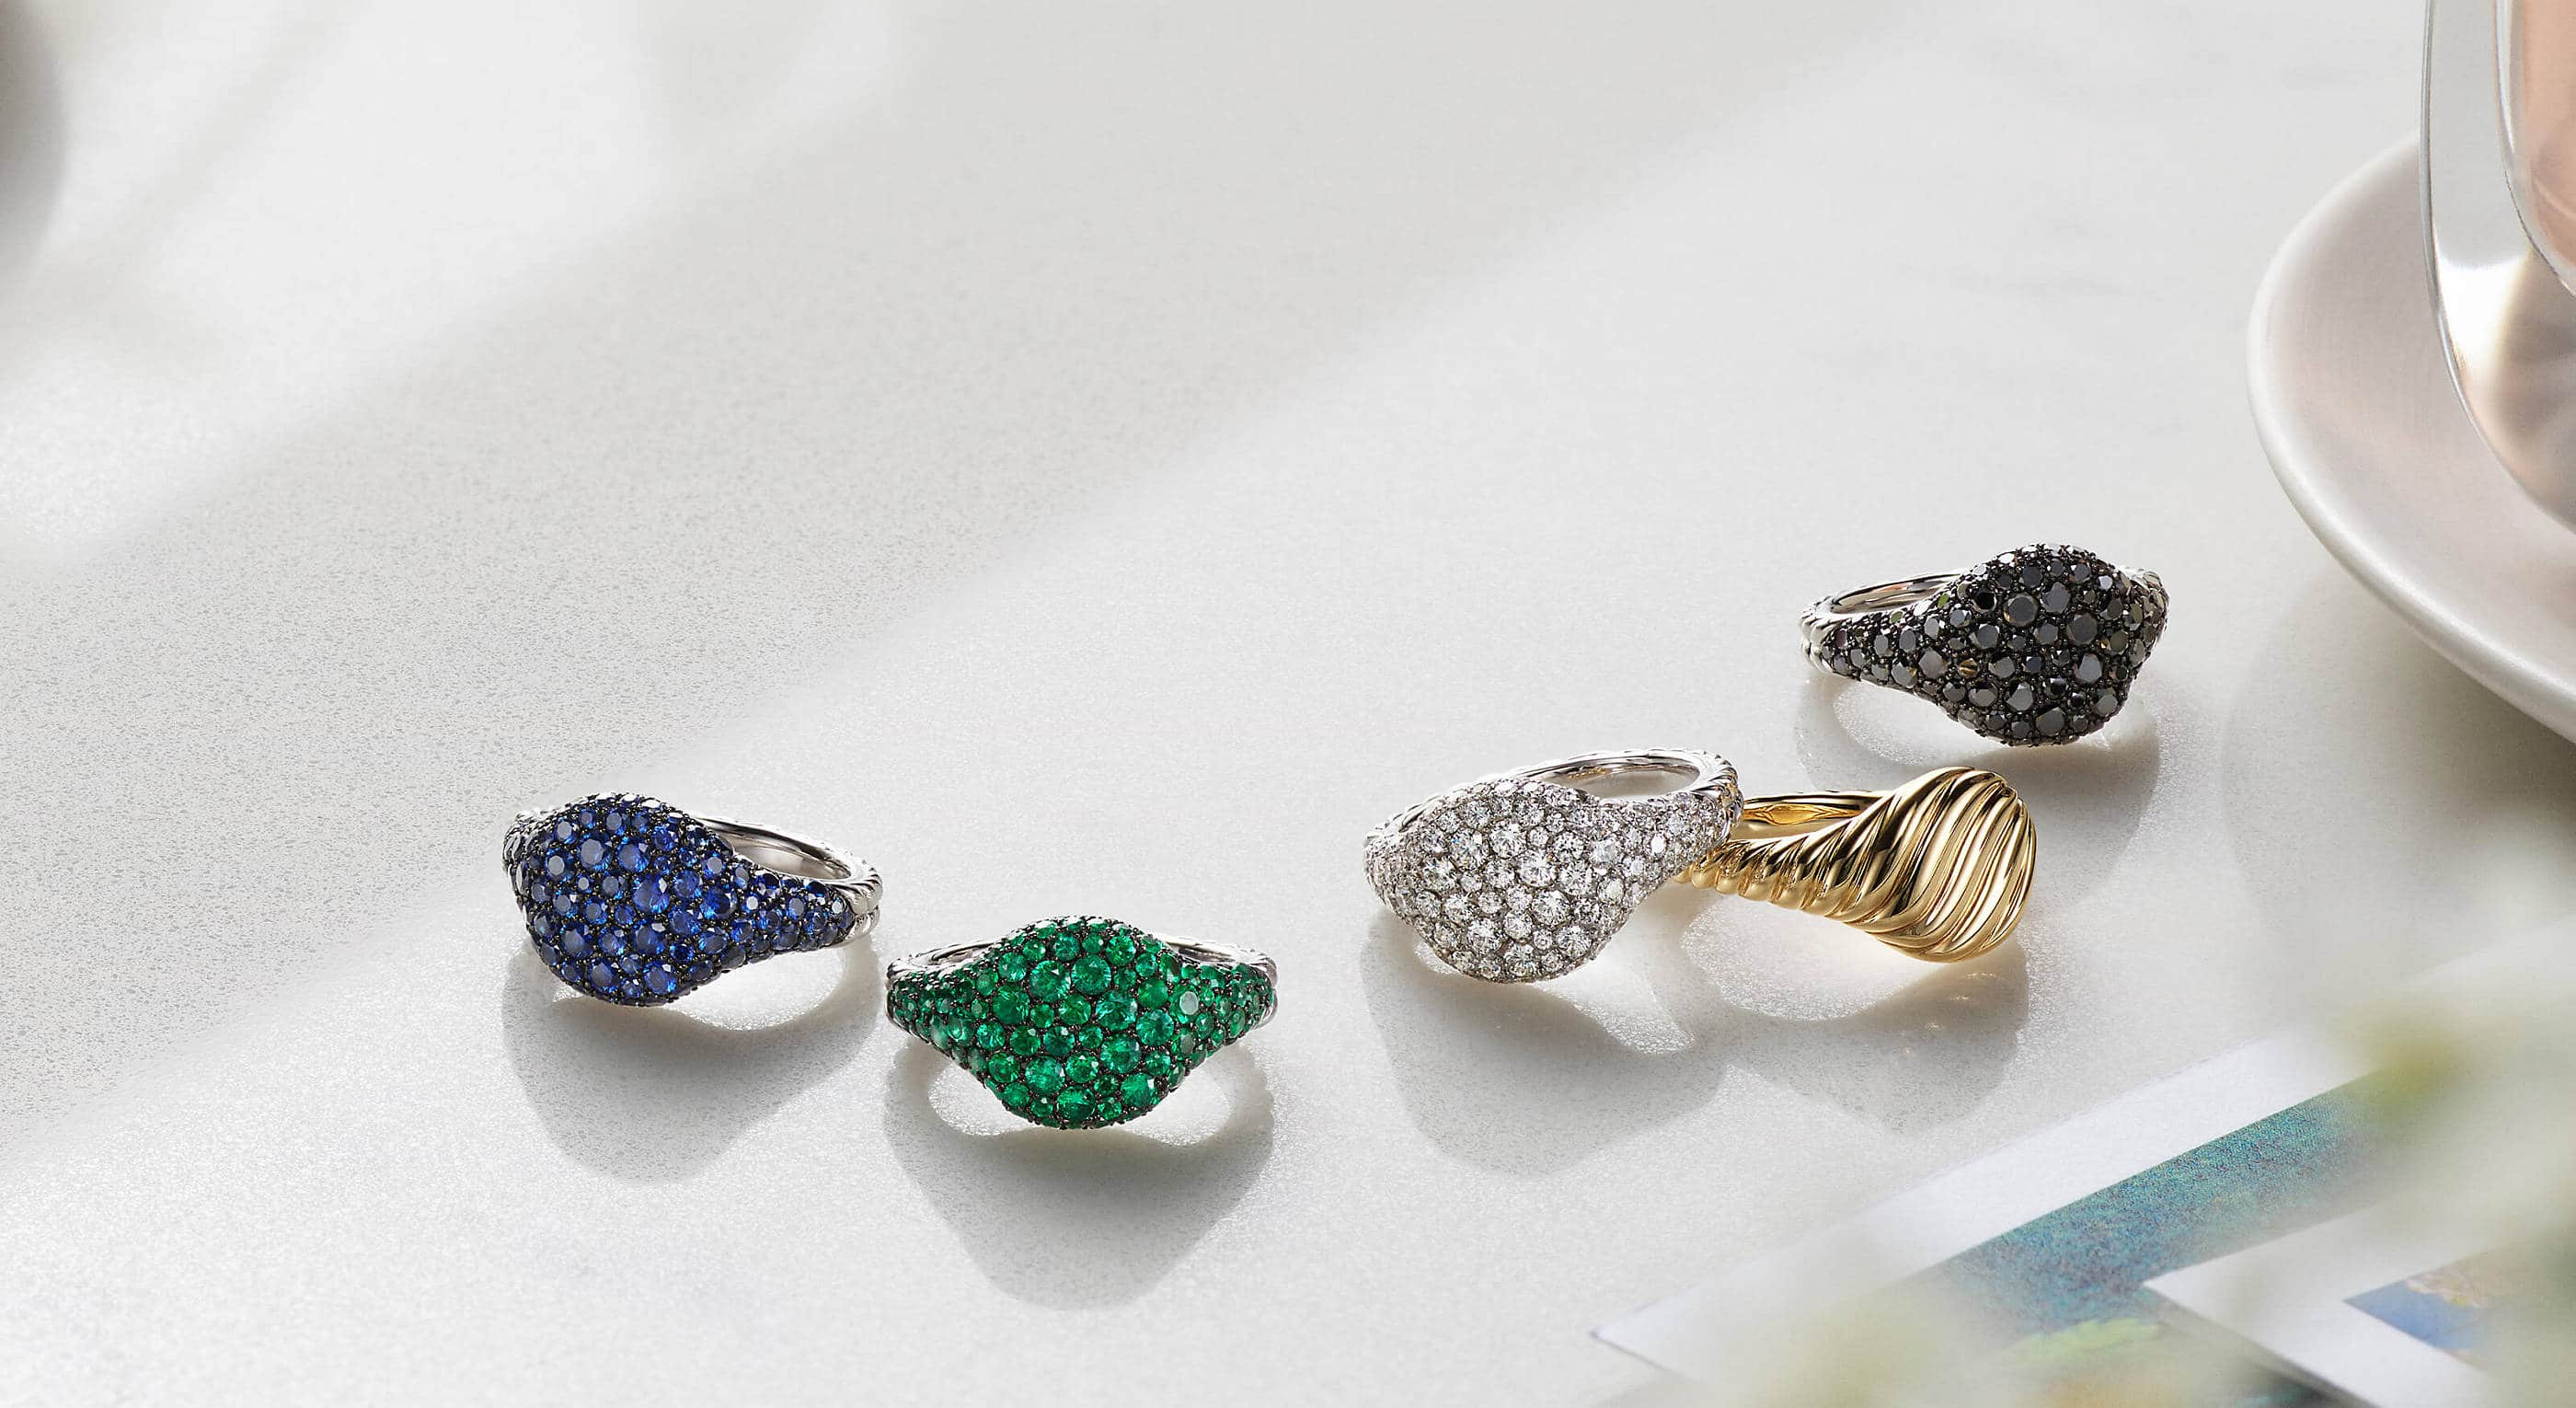 A color photo shows five David Yurman women's pinky rings scattered on a white surface next to a perfume bottle on a white saucer and color photographs. Four rings are crafted from 18K white gold encrusted with sapphires, emeralds or black or white diamonds. One ring is crafted from Cabled yellow gold.